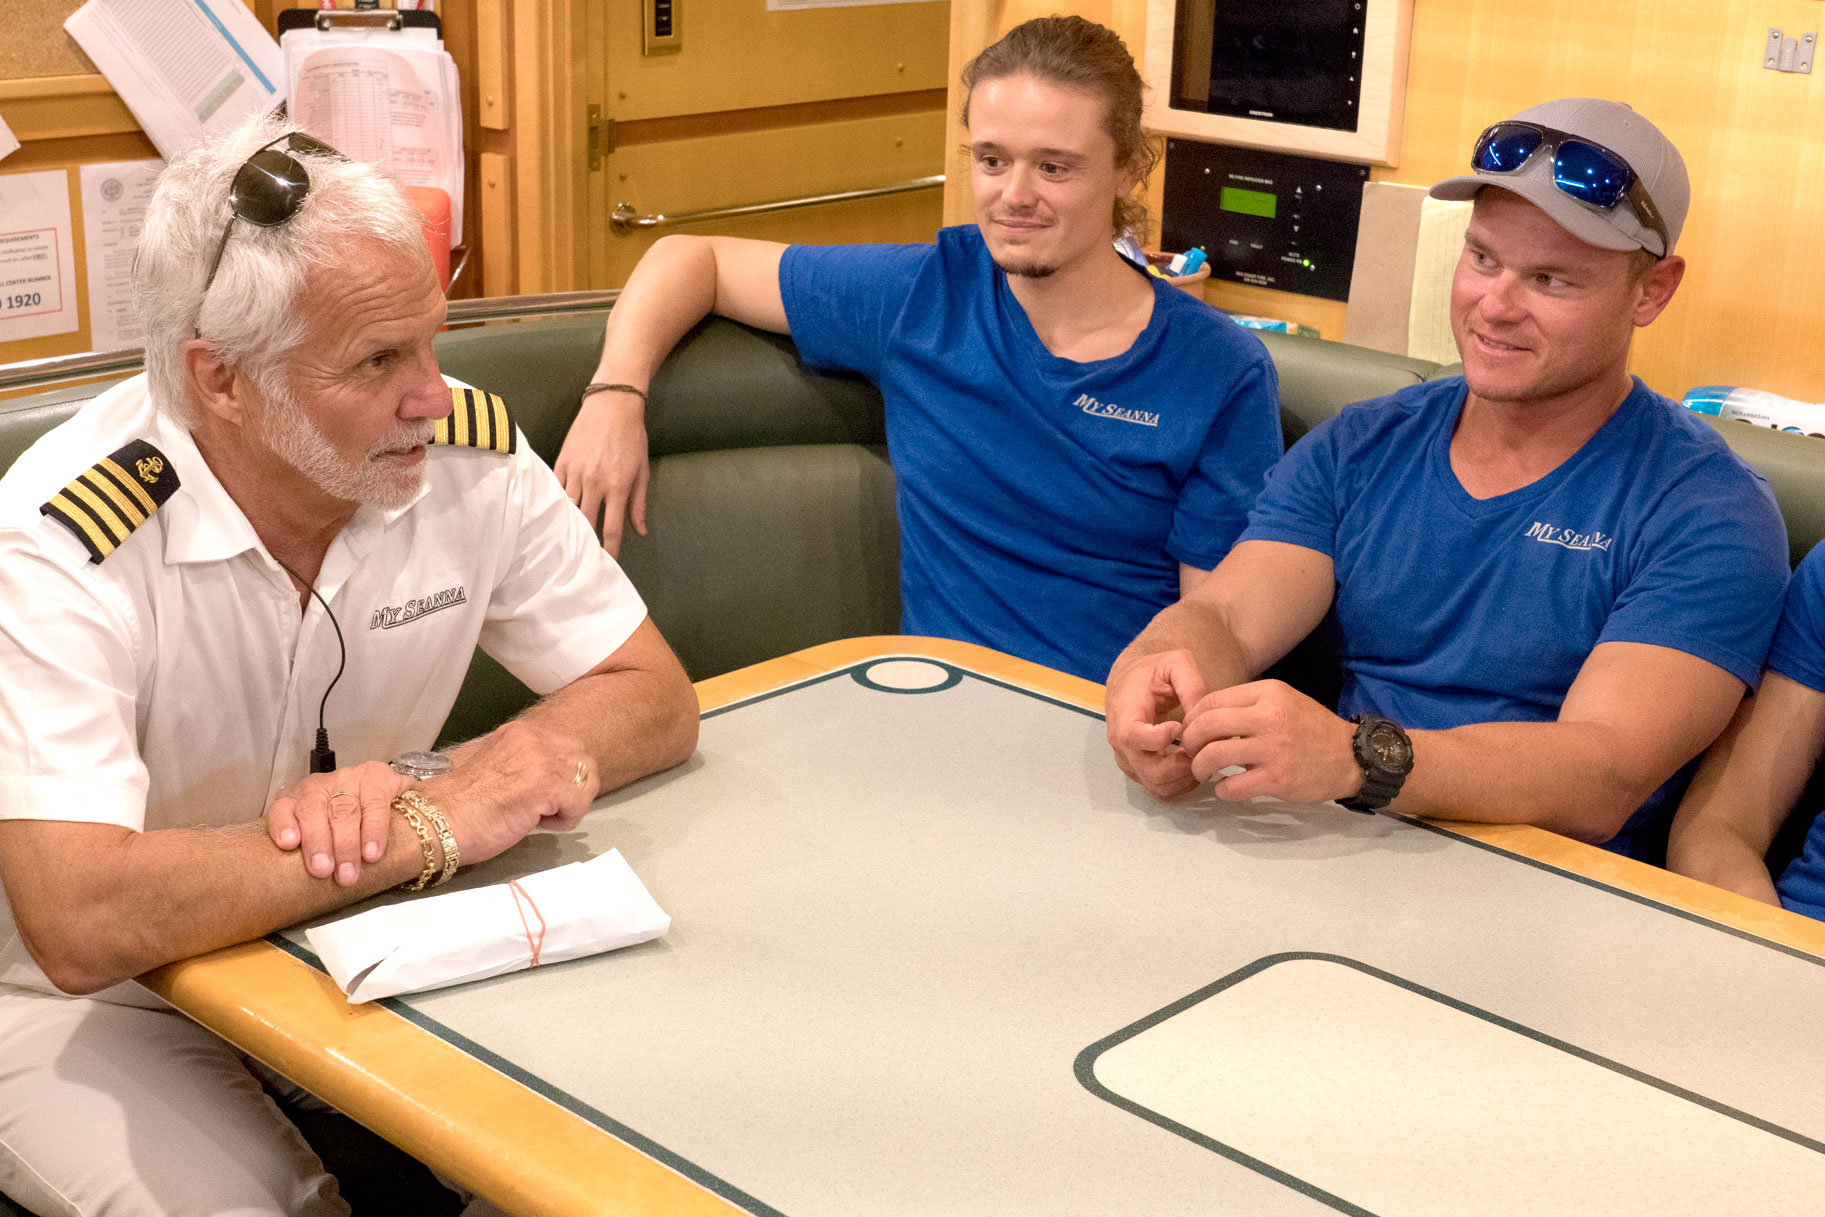 Captain Lee Rosbach, Adrian Martin, Ashton Pienaar in Below Deck Season 6